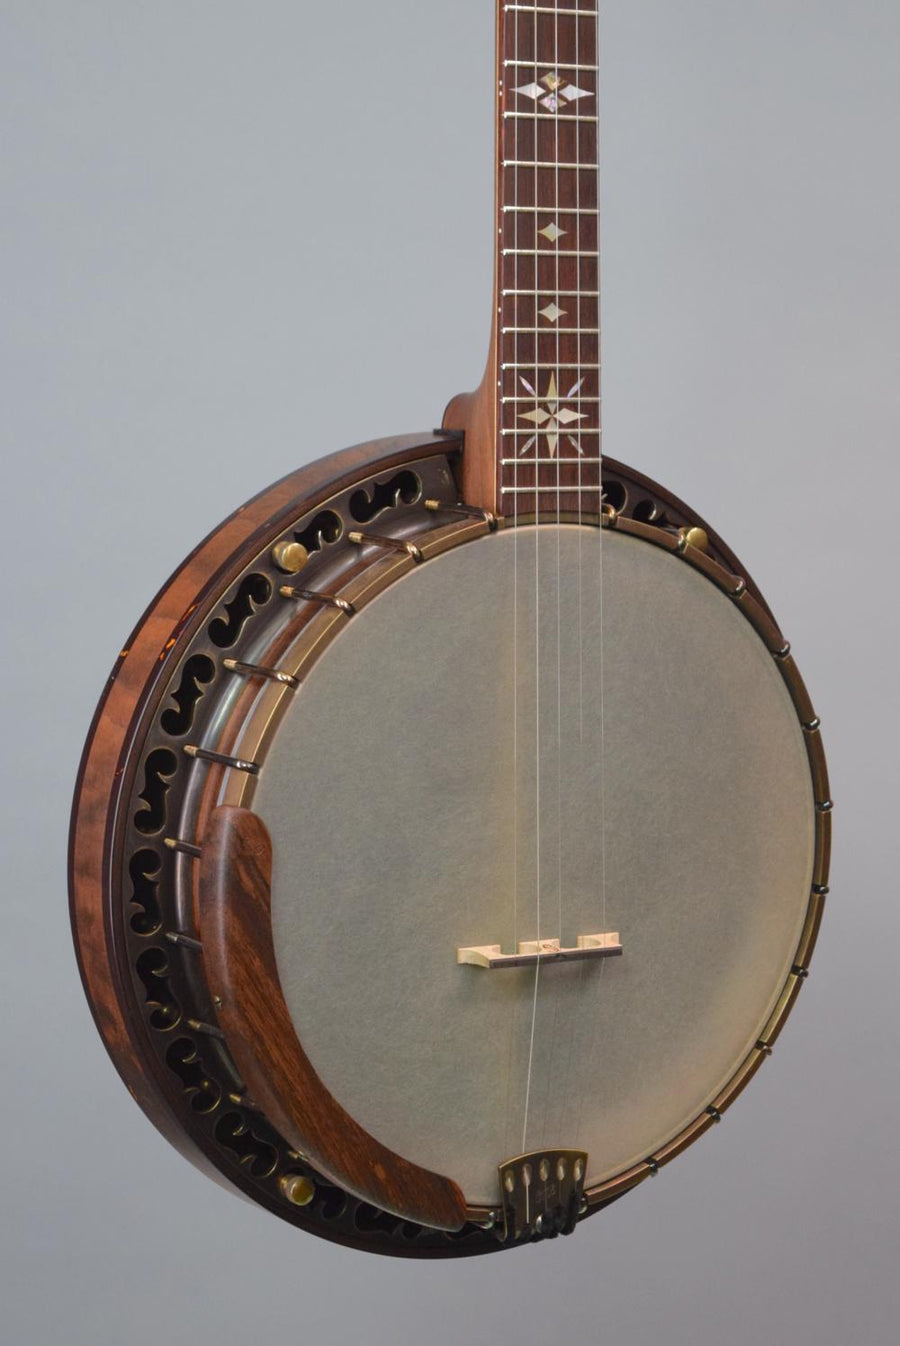 OME North Star 5-String Bluegrass Banjo w/ Walnut Neck & Resonator